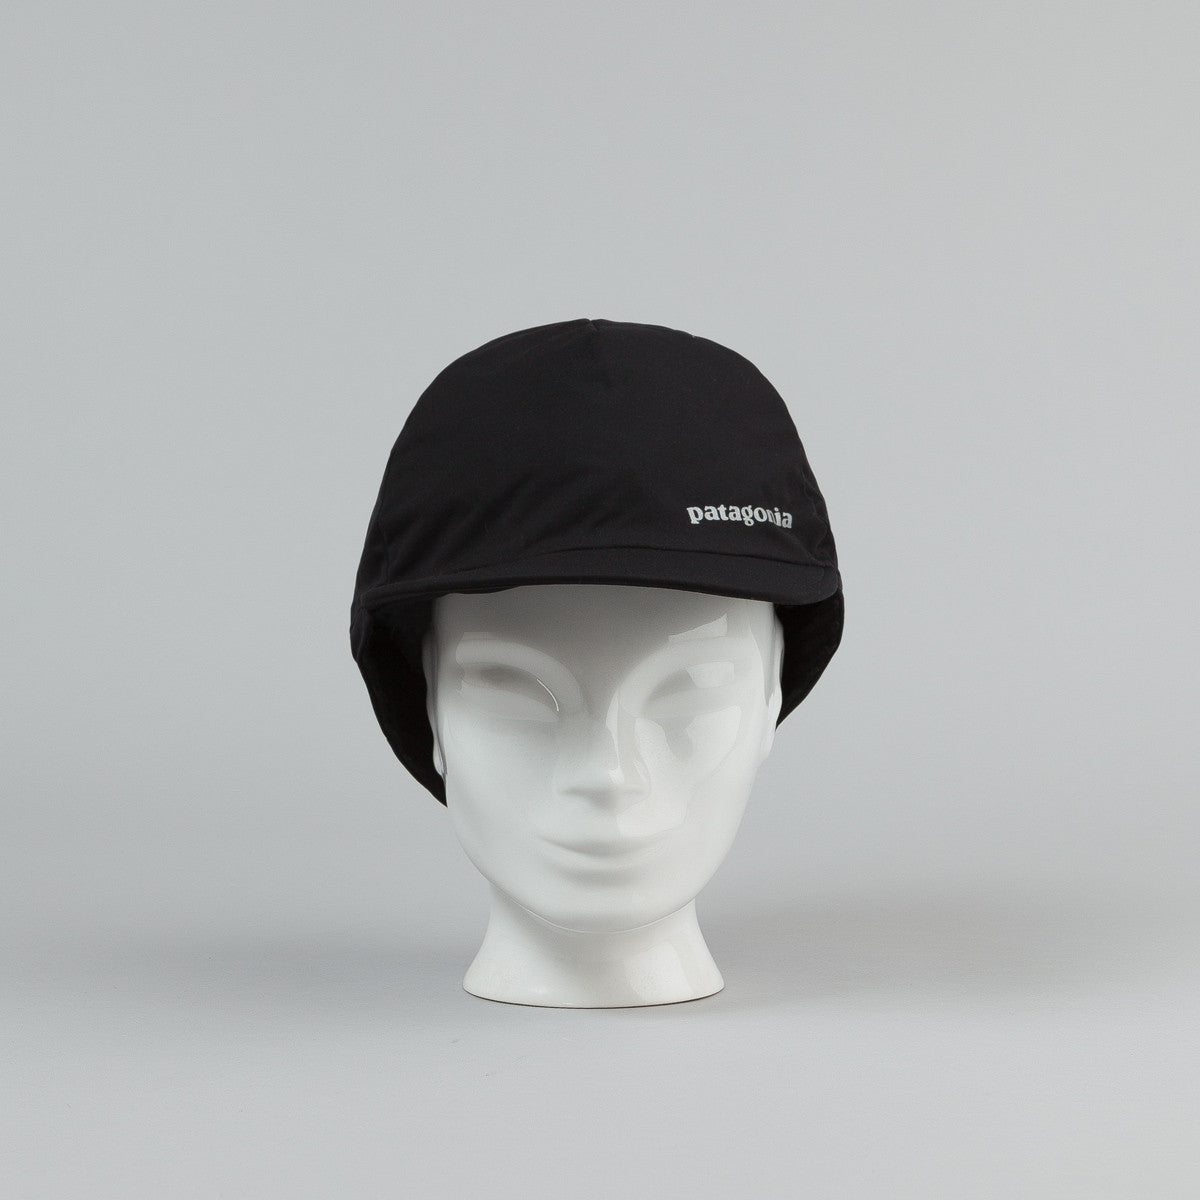 Patagonia Wind Shield Beanie - Black